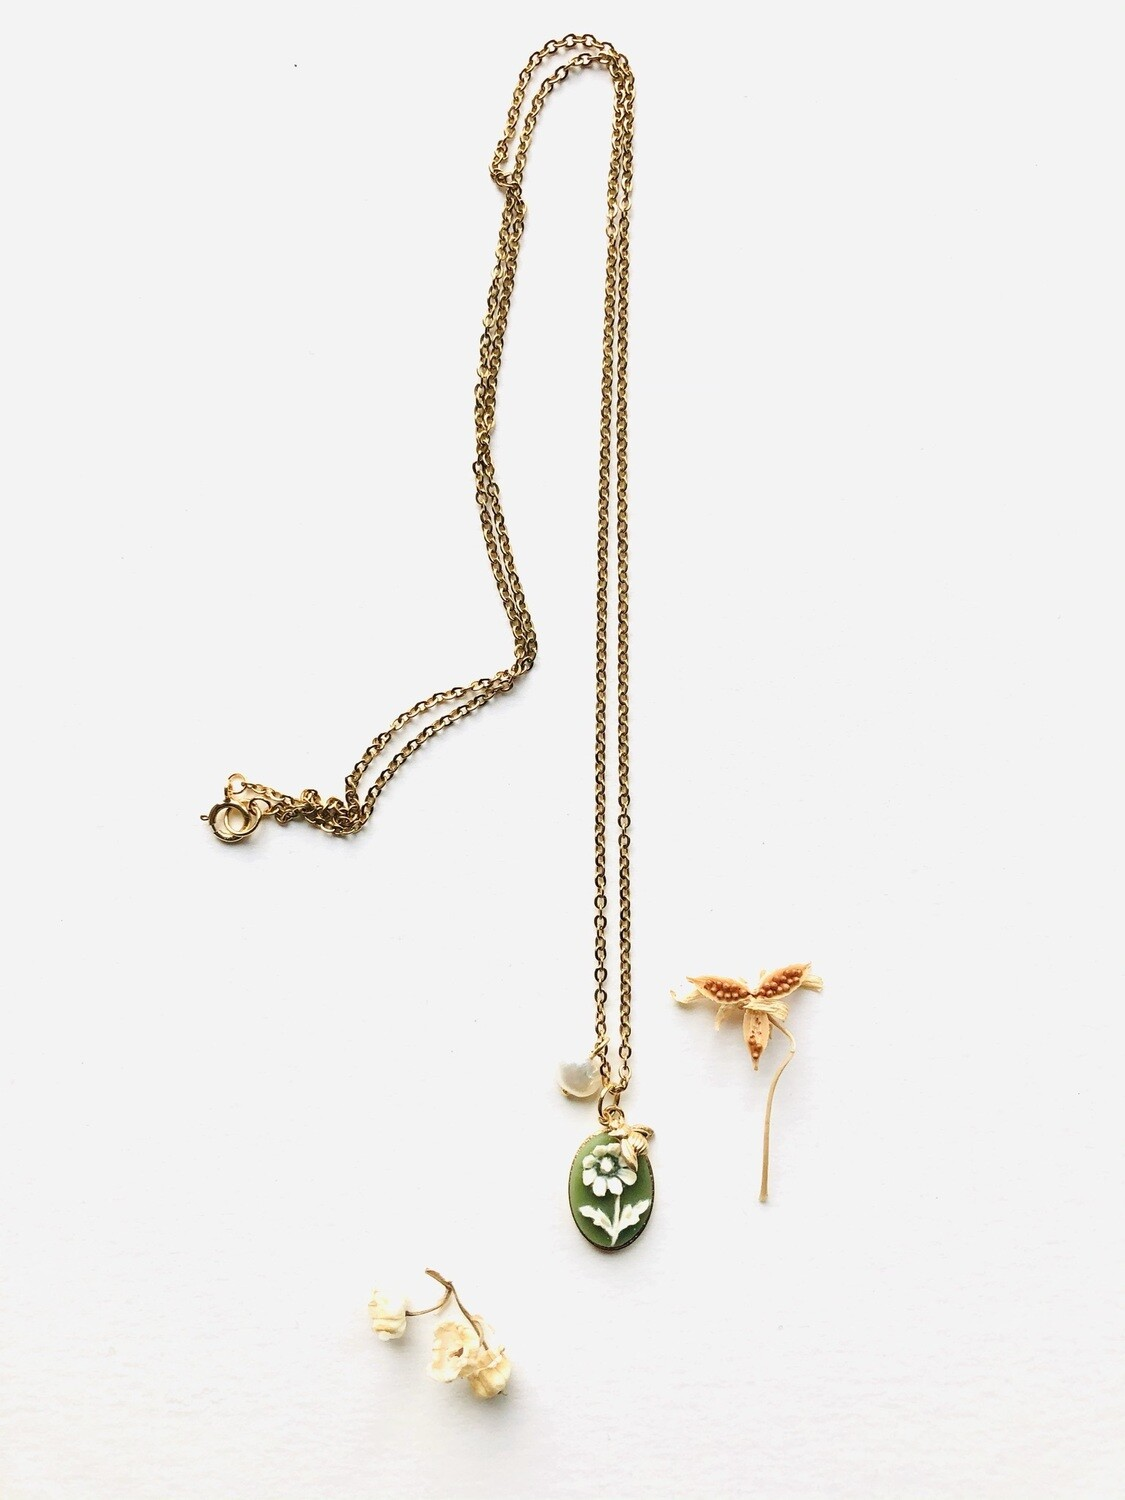 The  meadow green daisy necklace